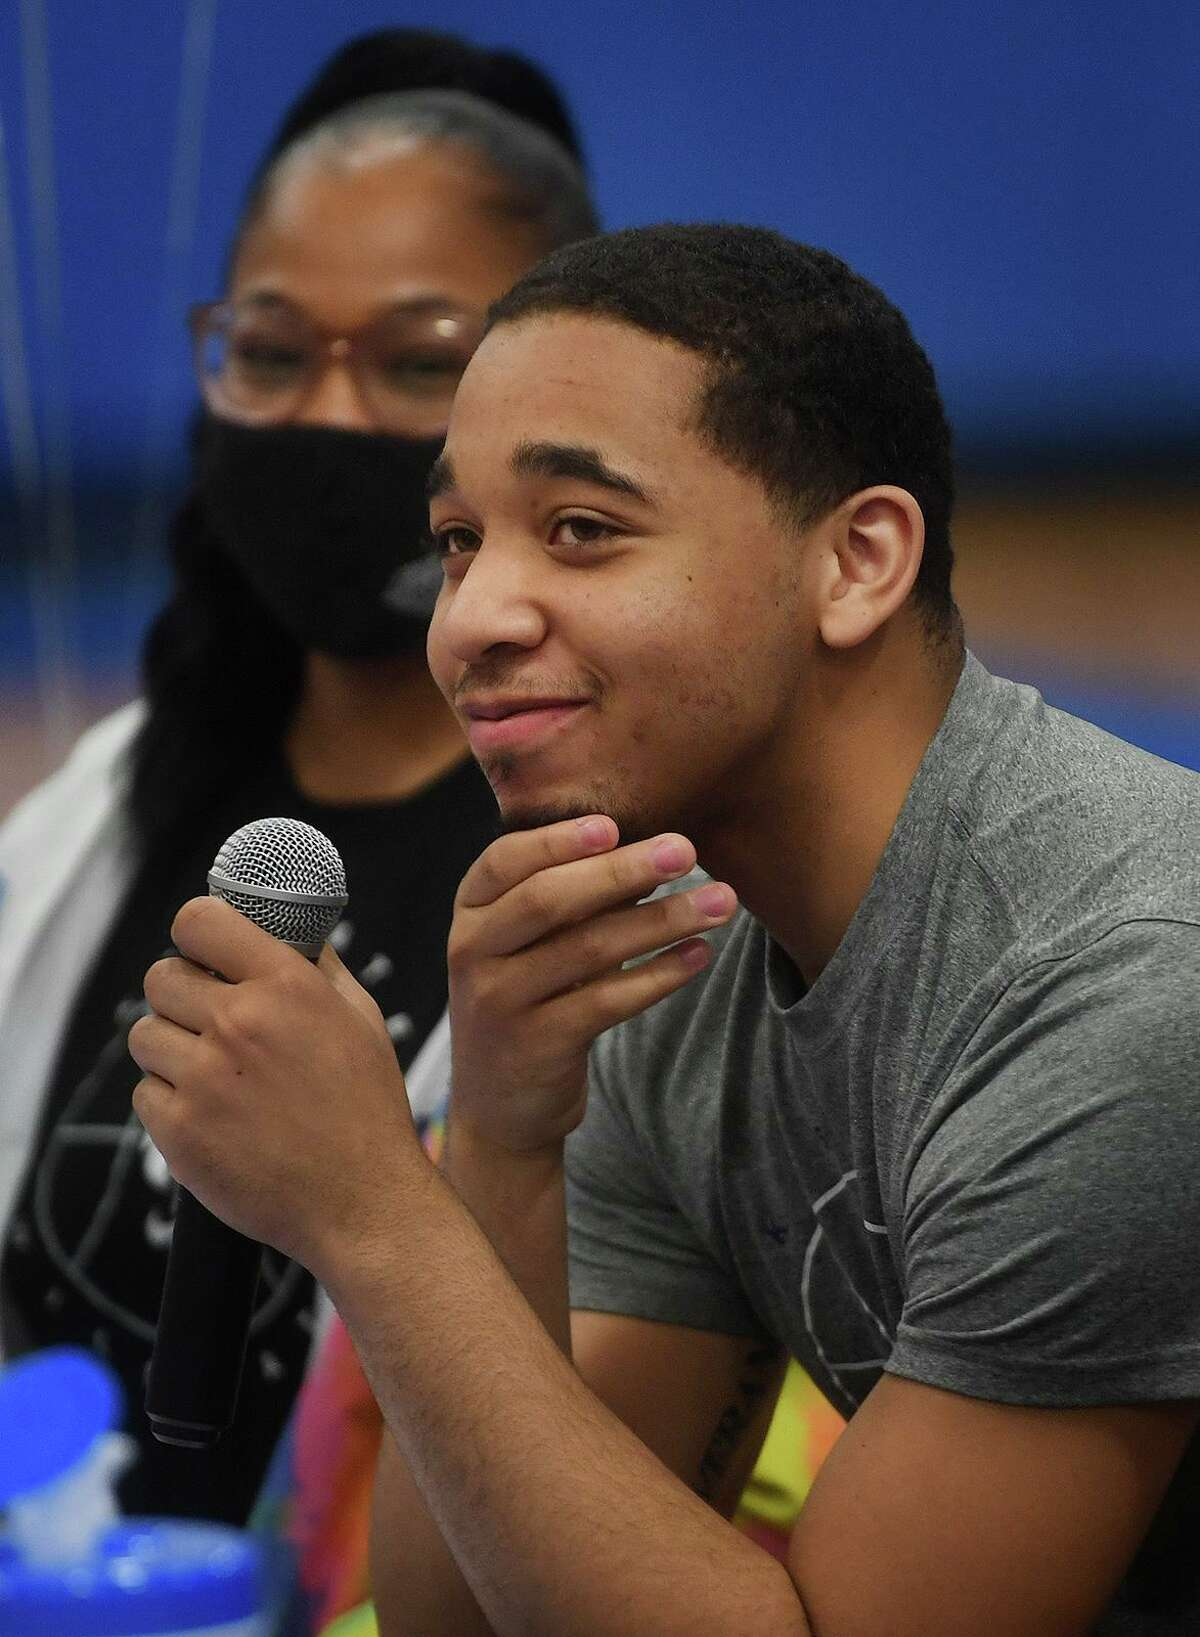 Former Bunnell basketball player Maximus Edwards thanks family, players, and coaches before signing his National Letter of Intent to attend Kansas State on Thursday.